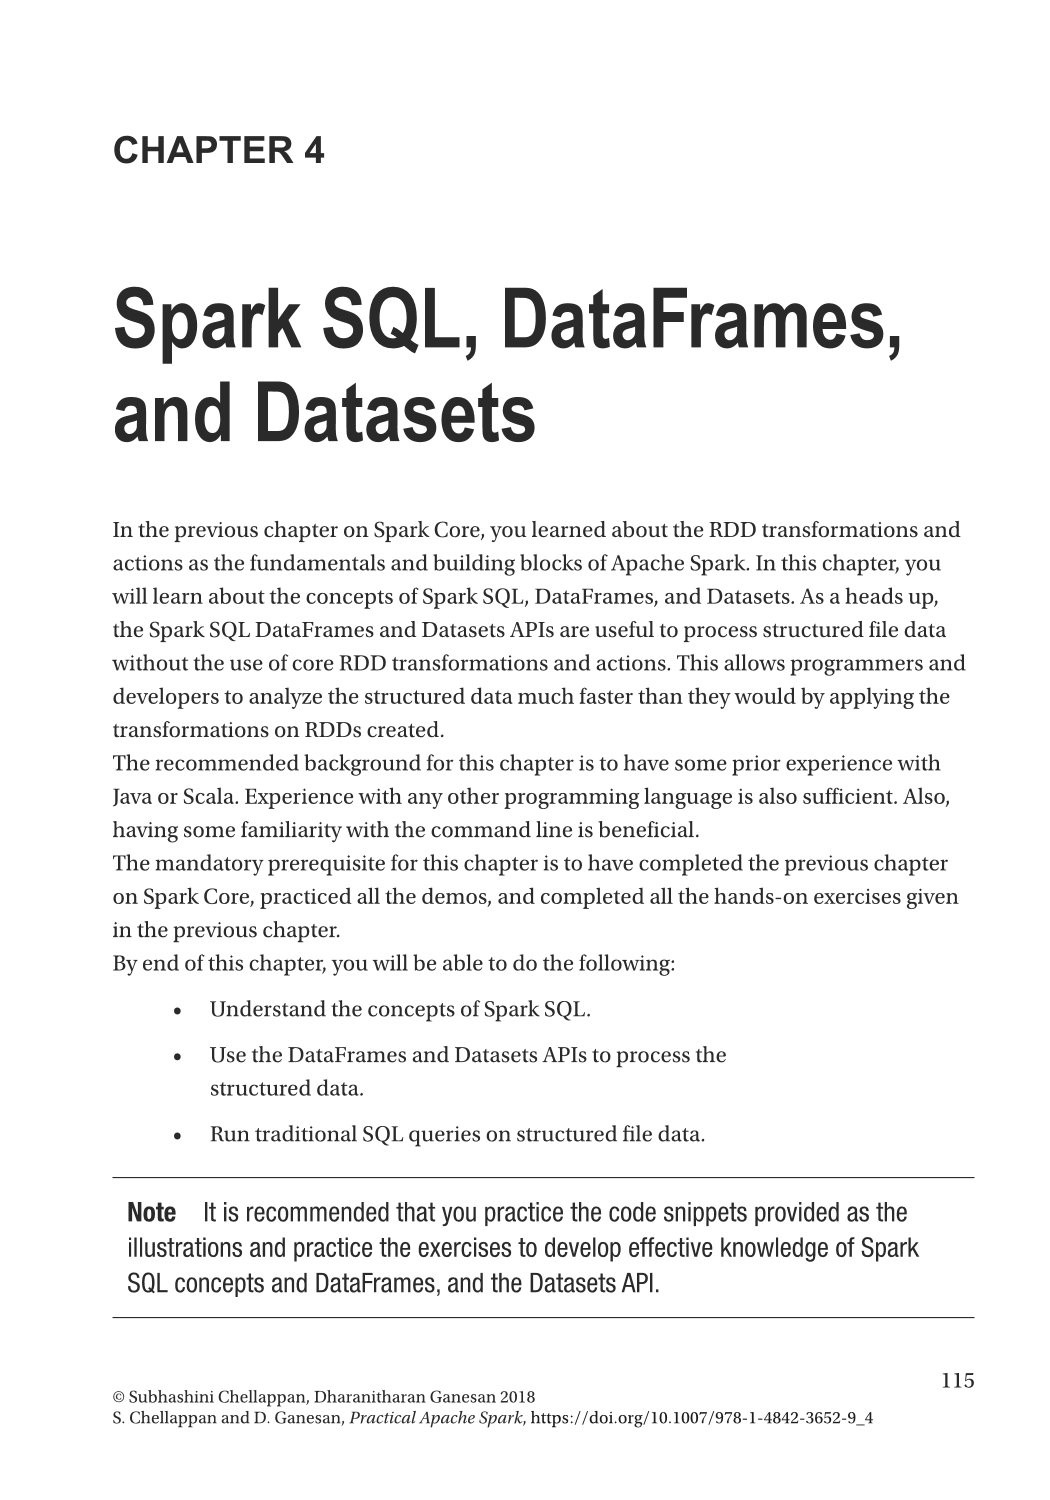 Practical Apache Spark: Using the Scala API-preview-4